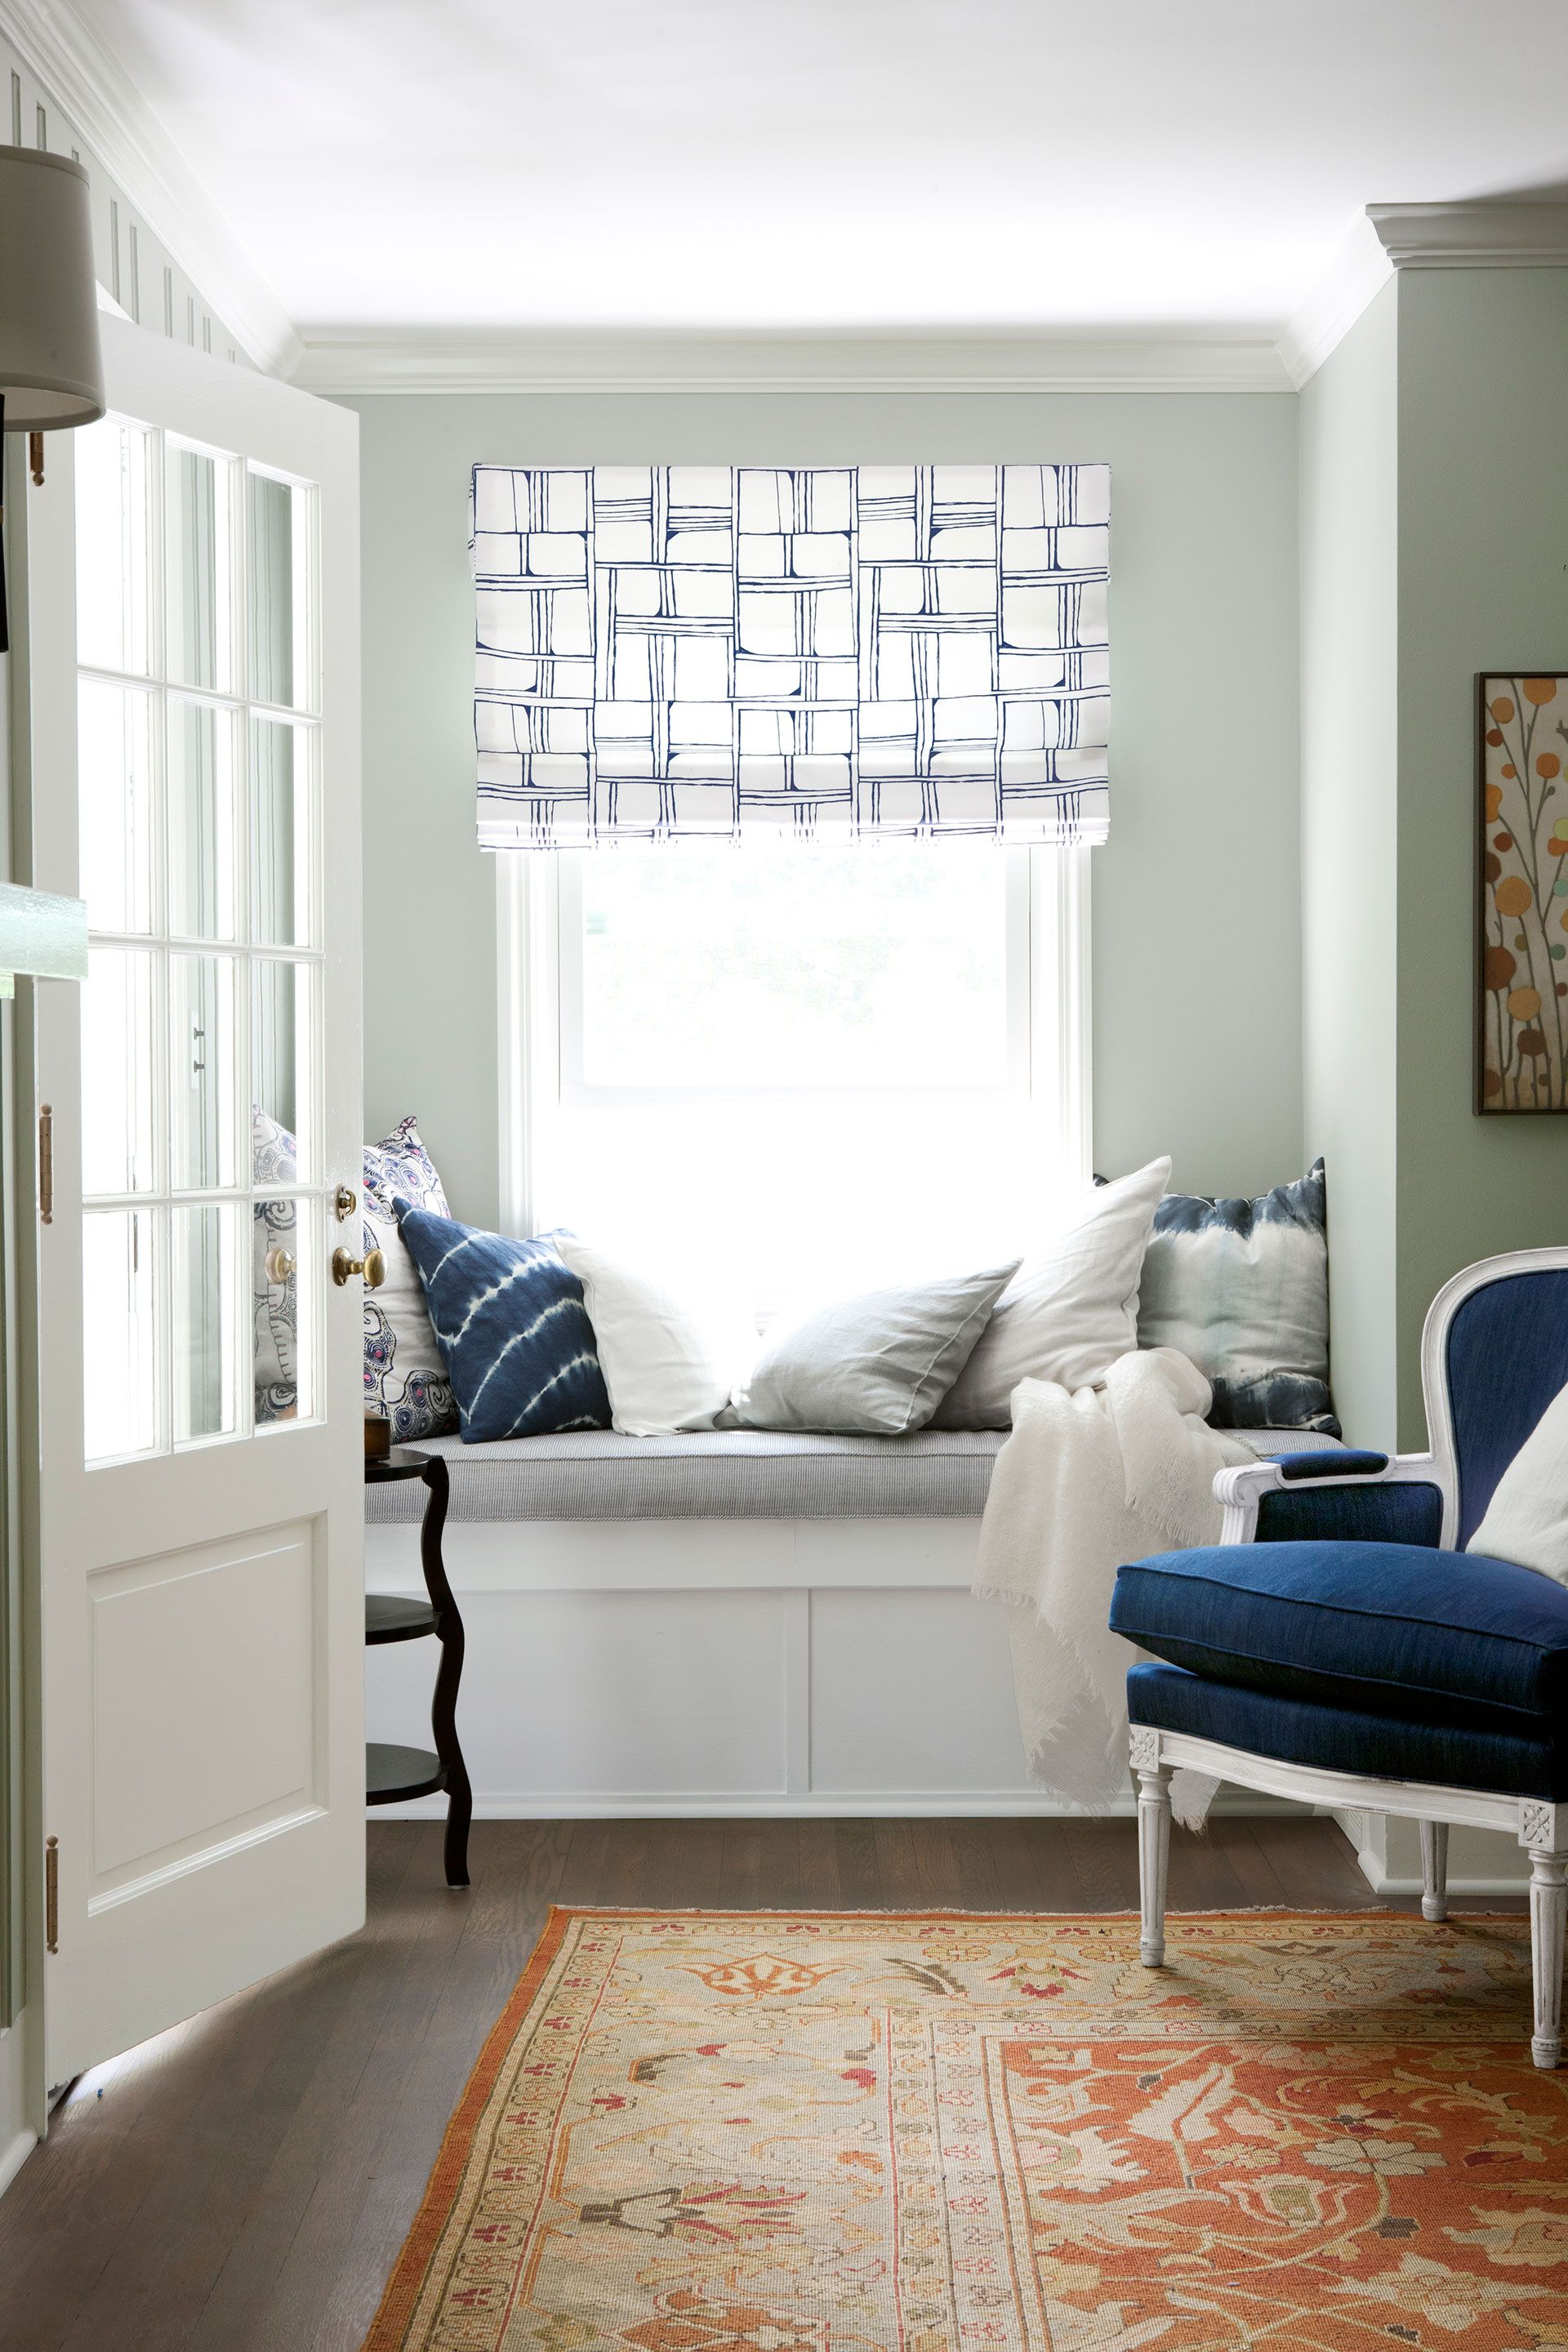 Step Inside a Bright and Beautiful Massachusetts Home